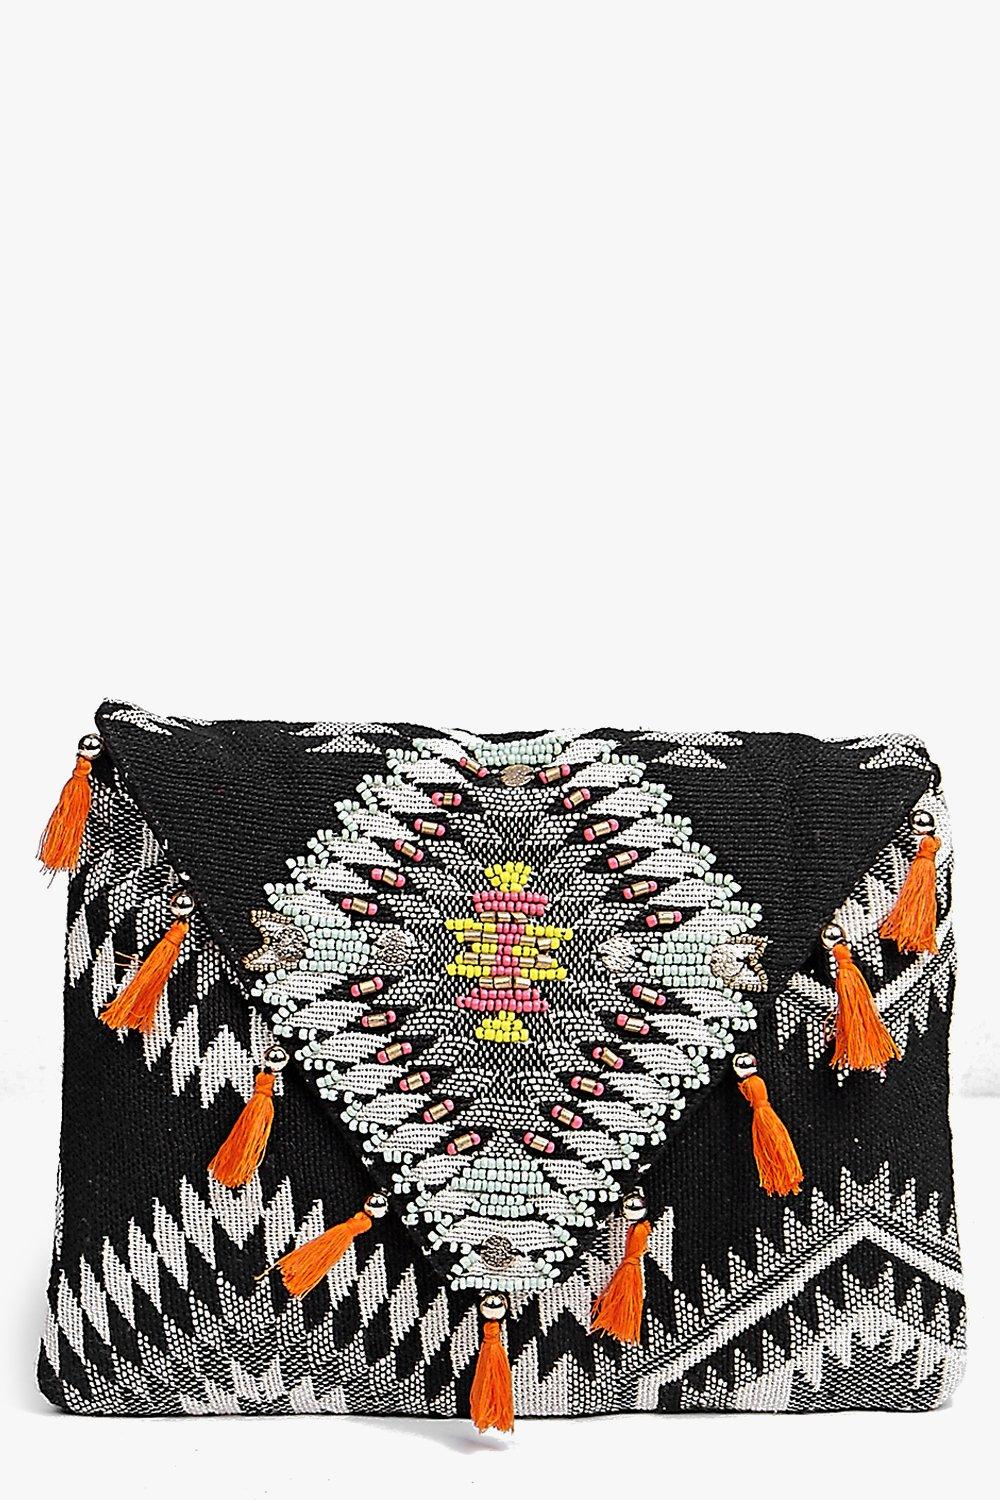 Taylor Tassel Edge Clutch Bag